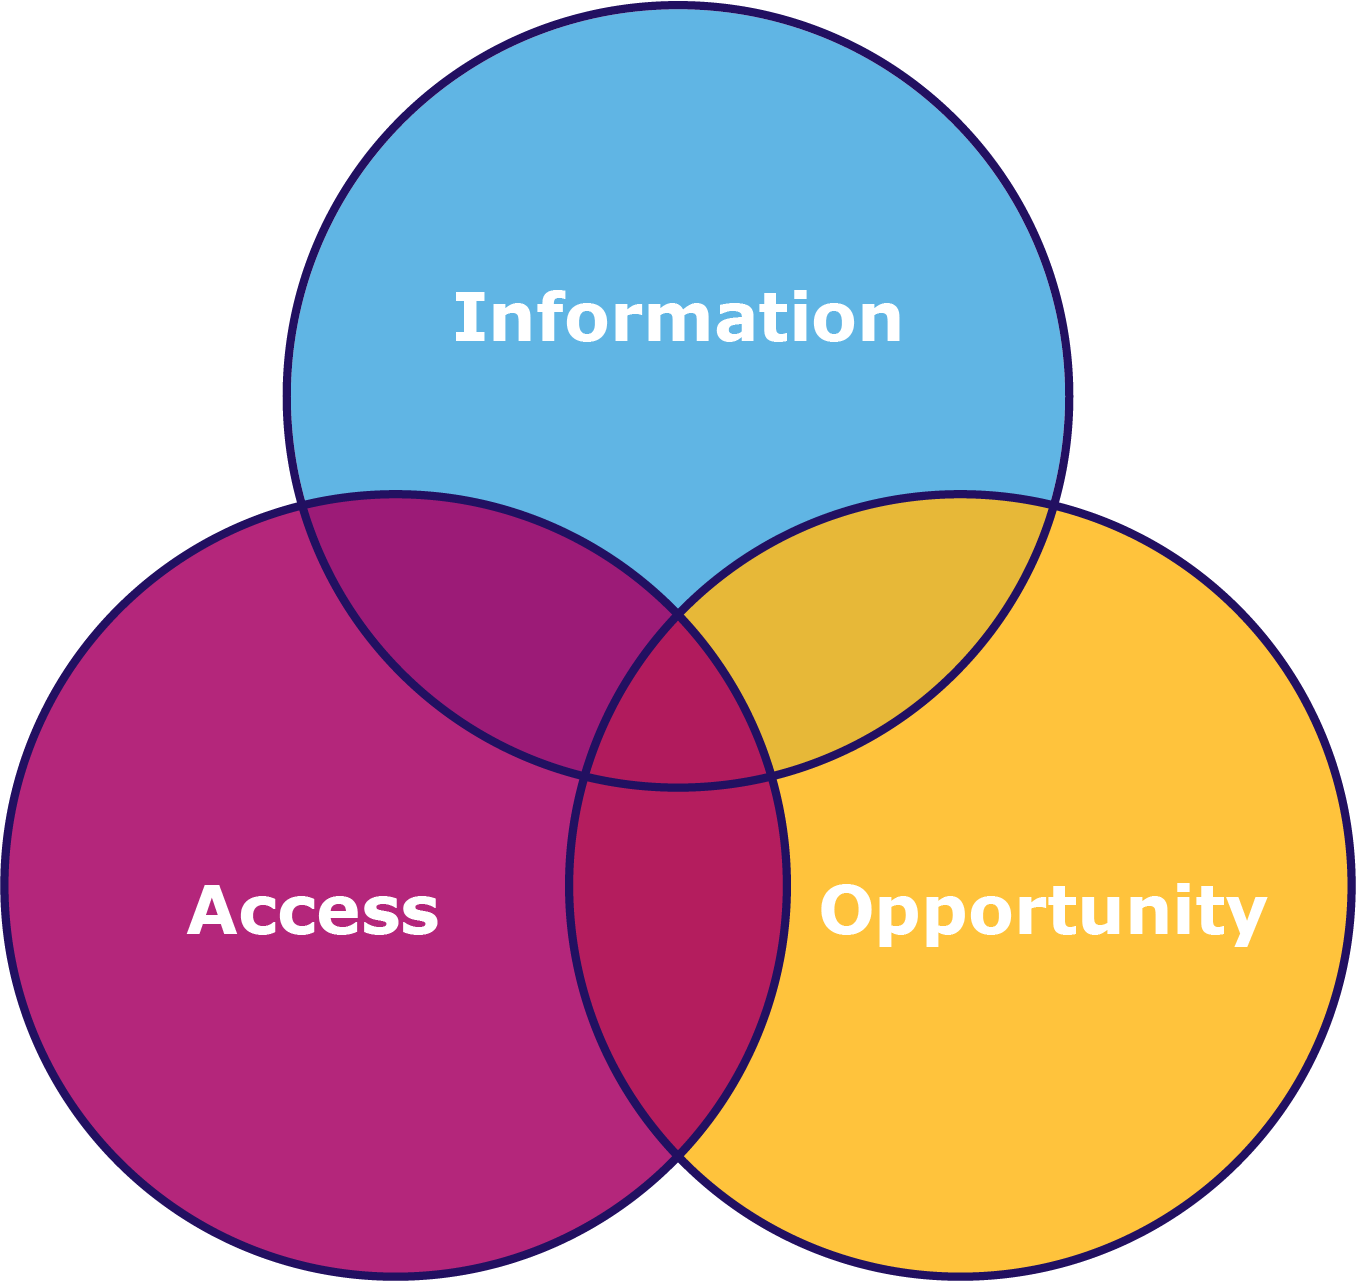 A Venn diagram of information, access, and opportunity